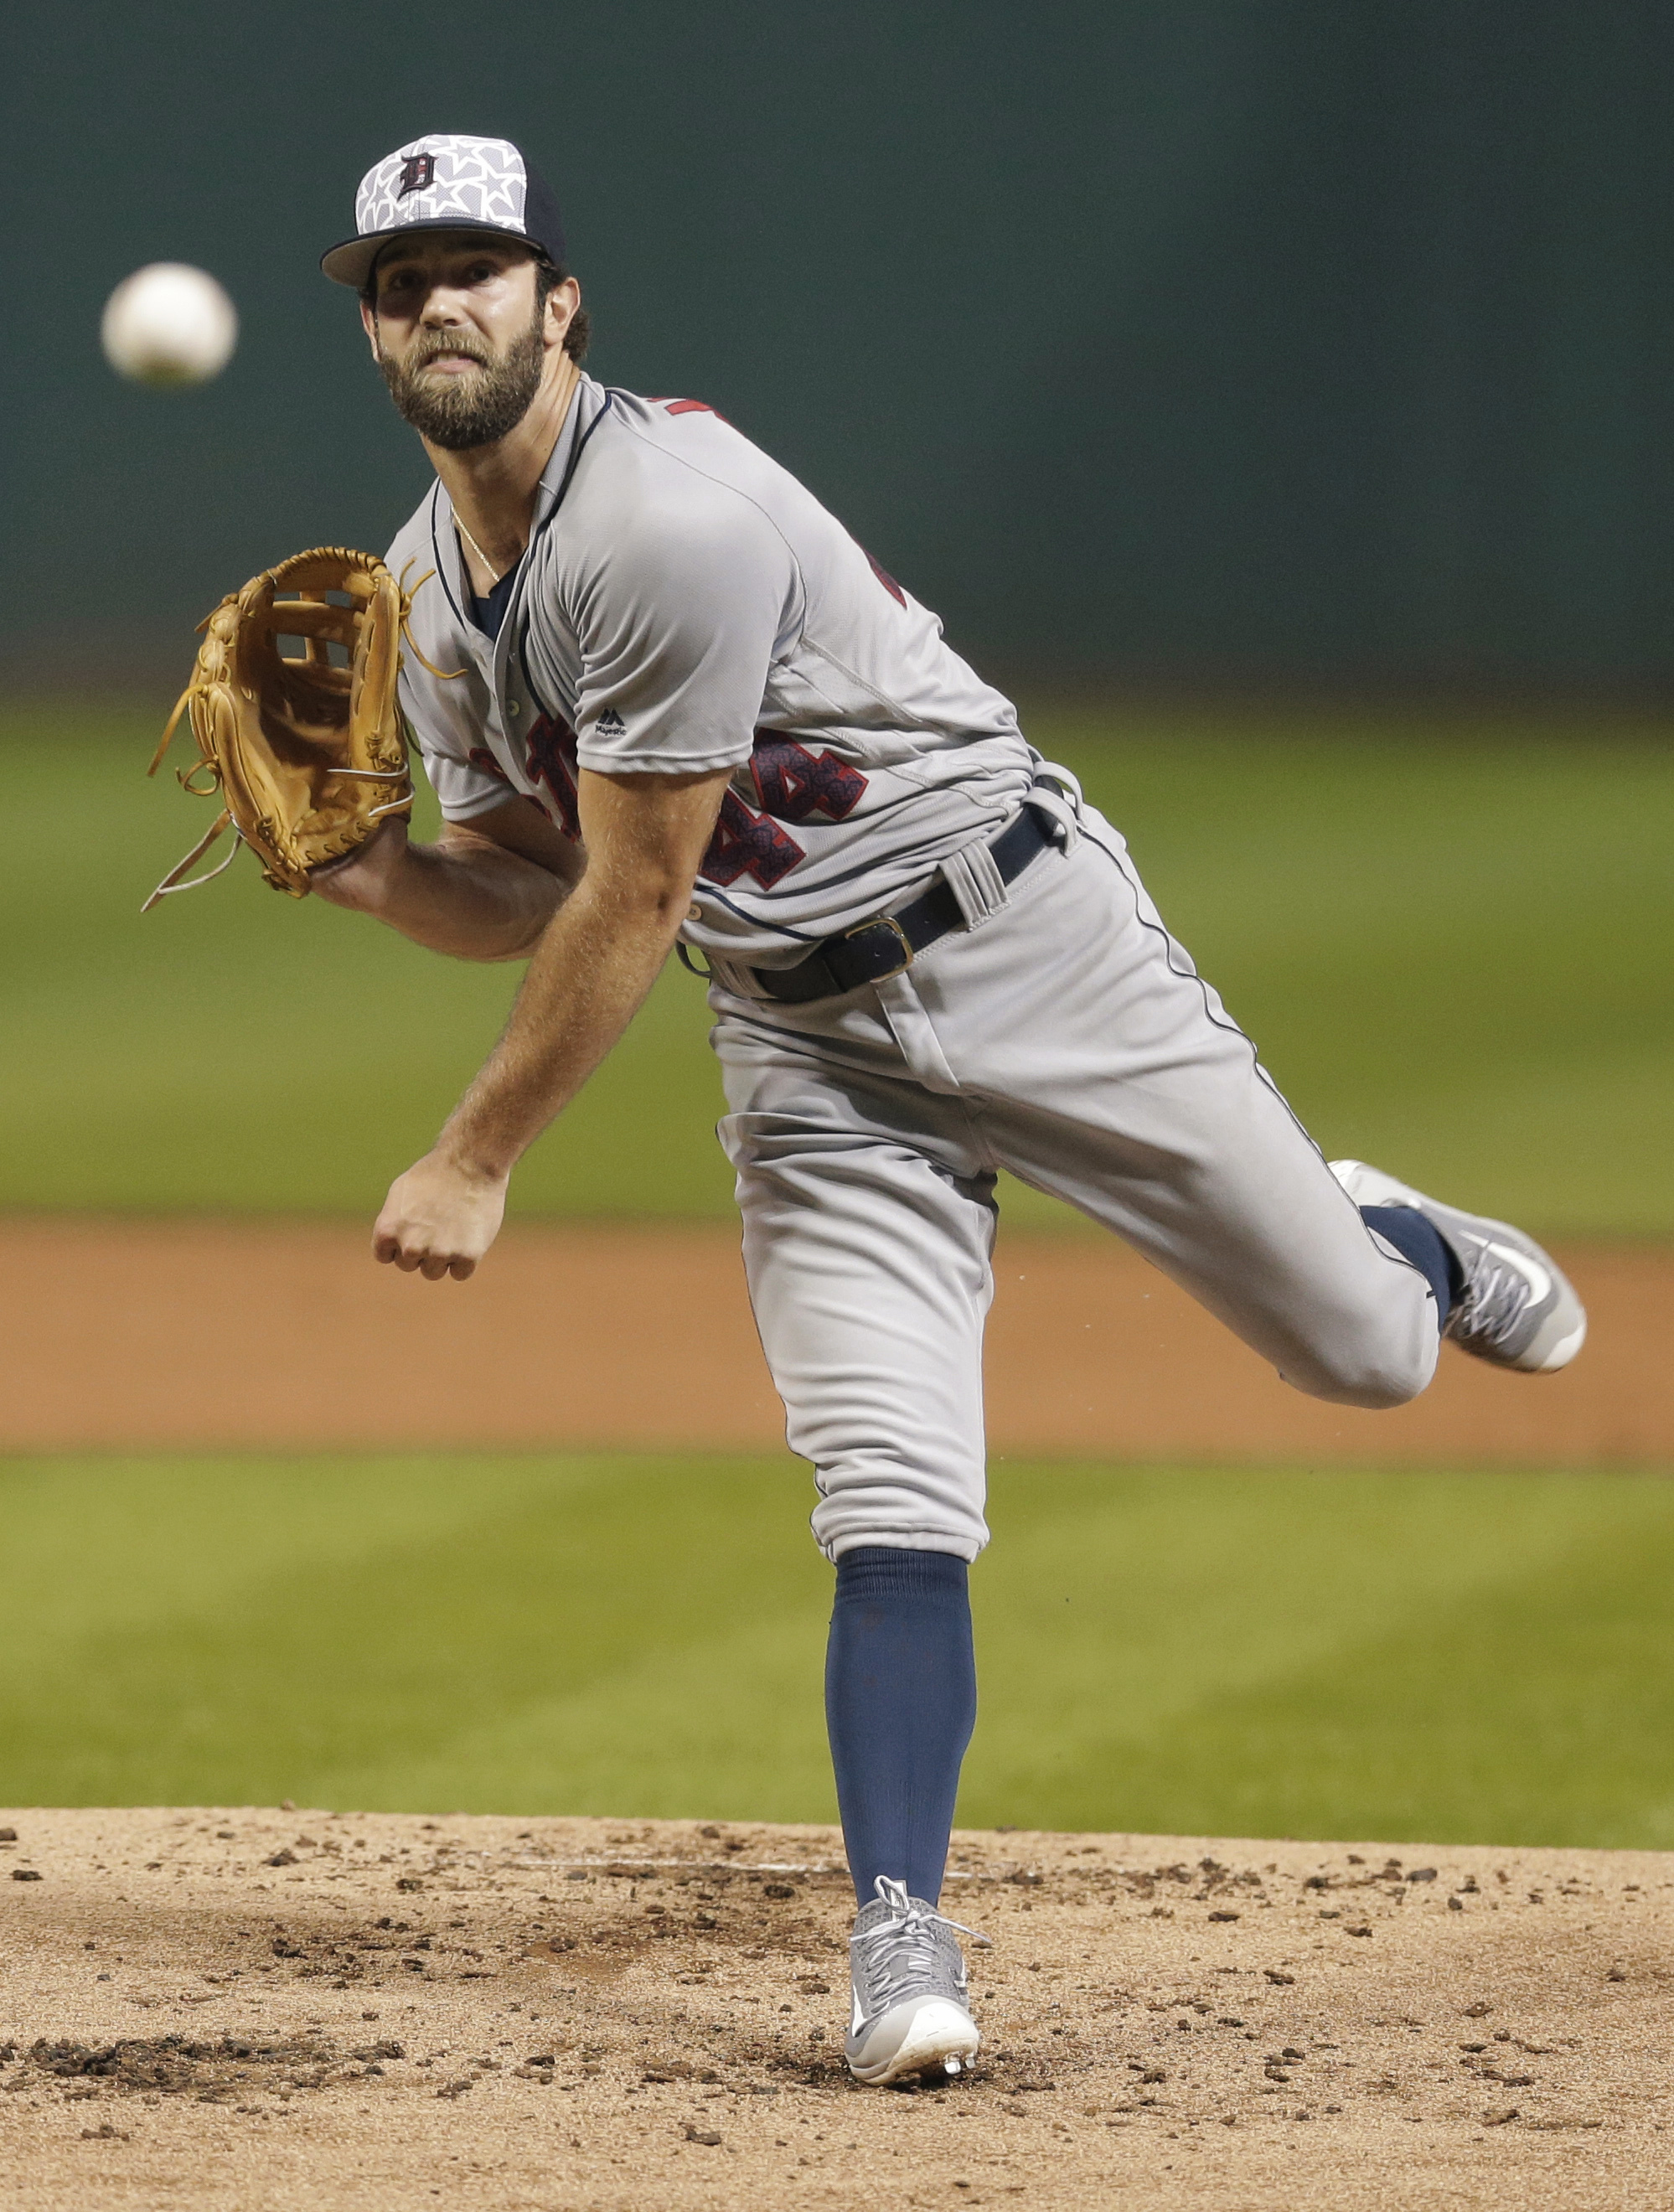 Detroit Tigers starting pitcher Daniel Norris delivers in the first inning of a baseball game against the Cleveland Indians, Monday, July 4, 2016, in Cleveland. (AP Photo/Tony Dejak)